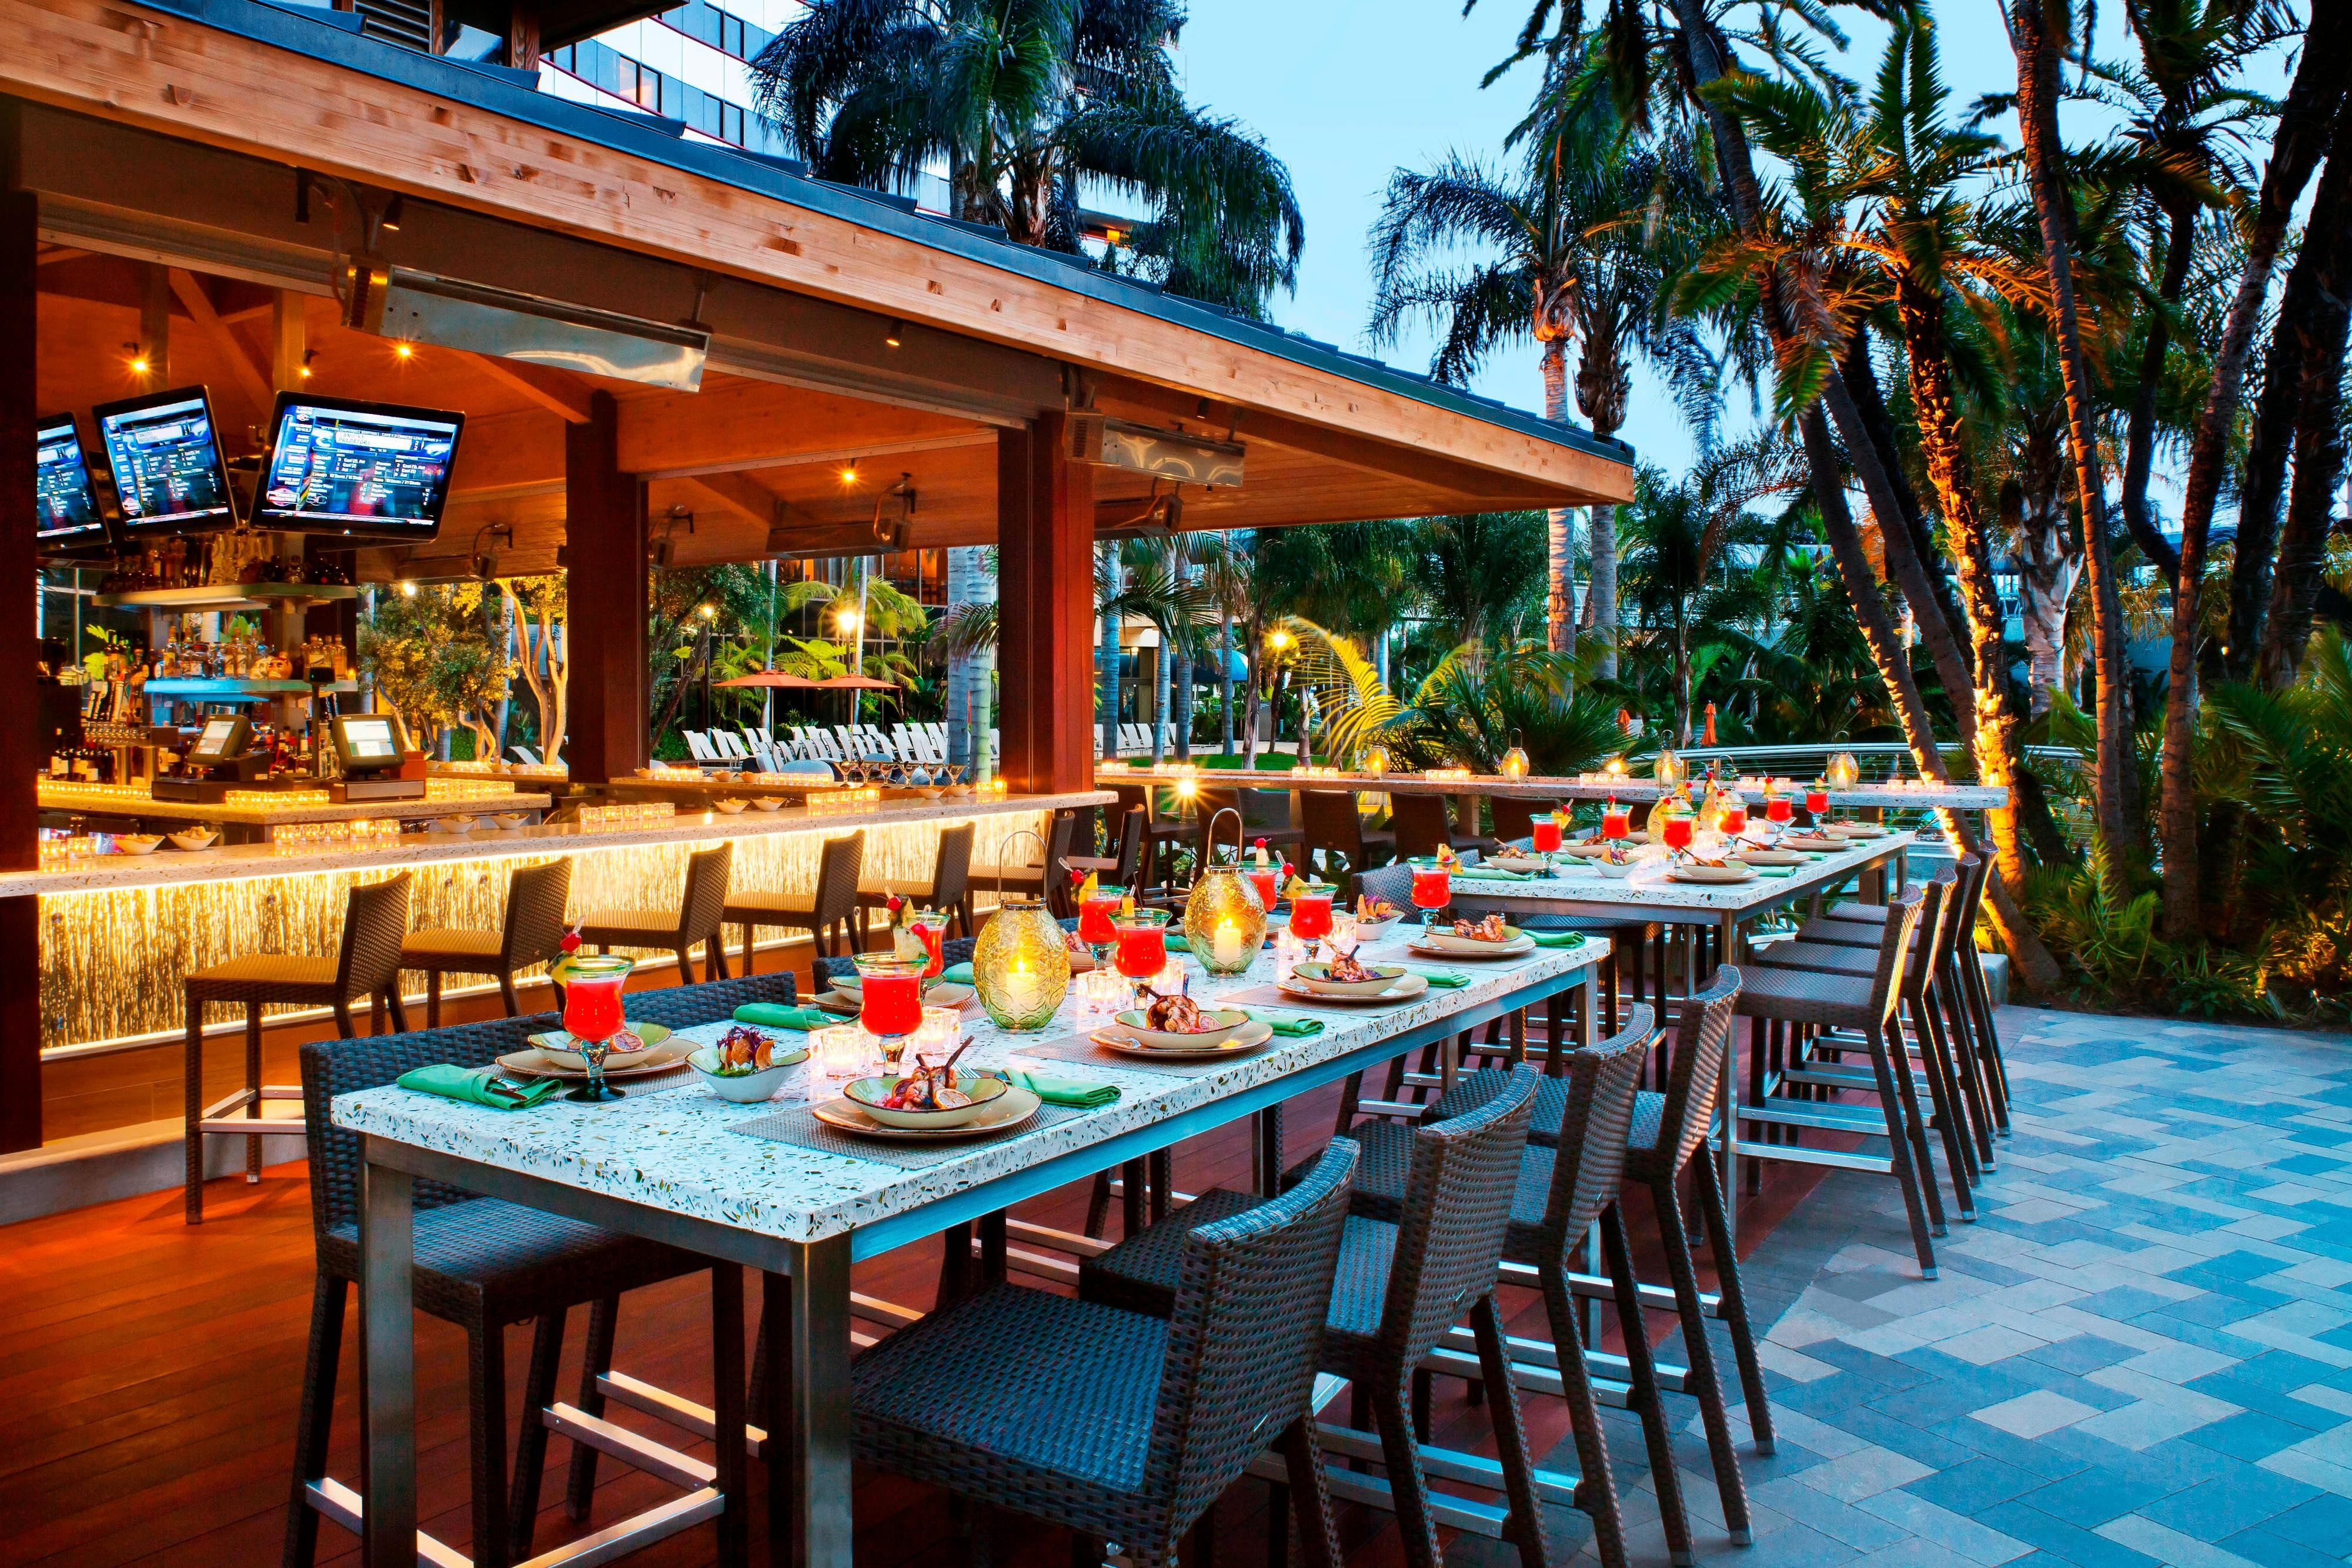 San Diego Outdoor Dining